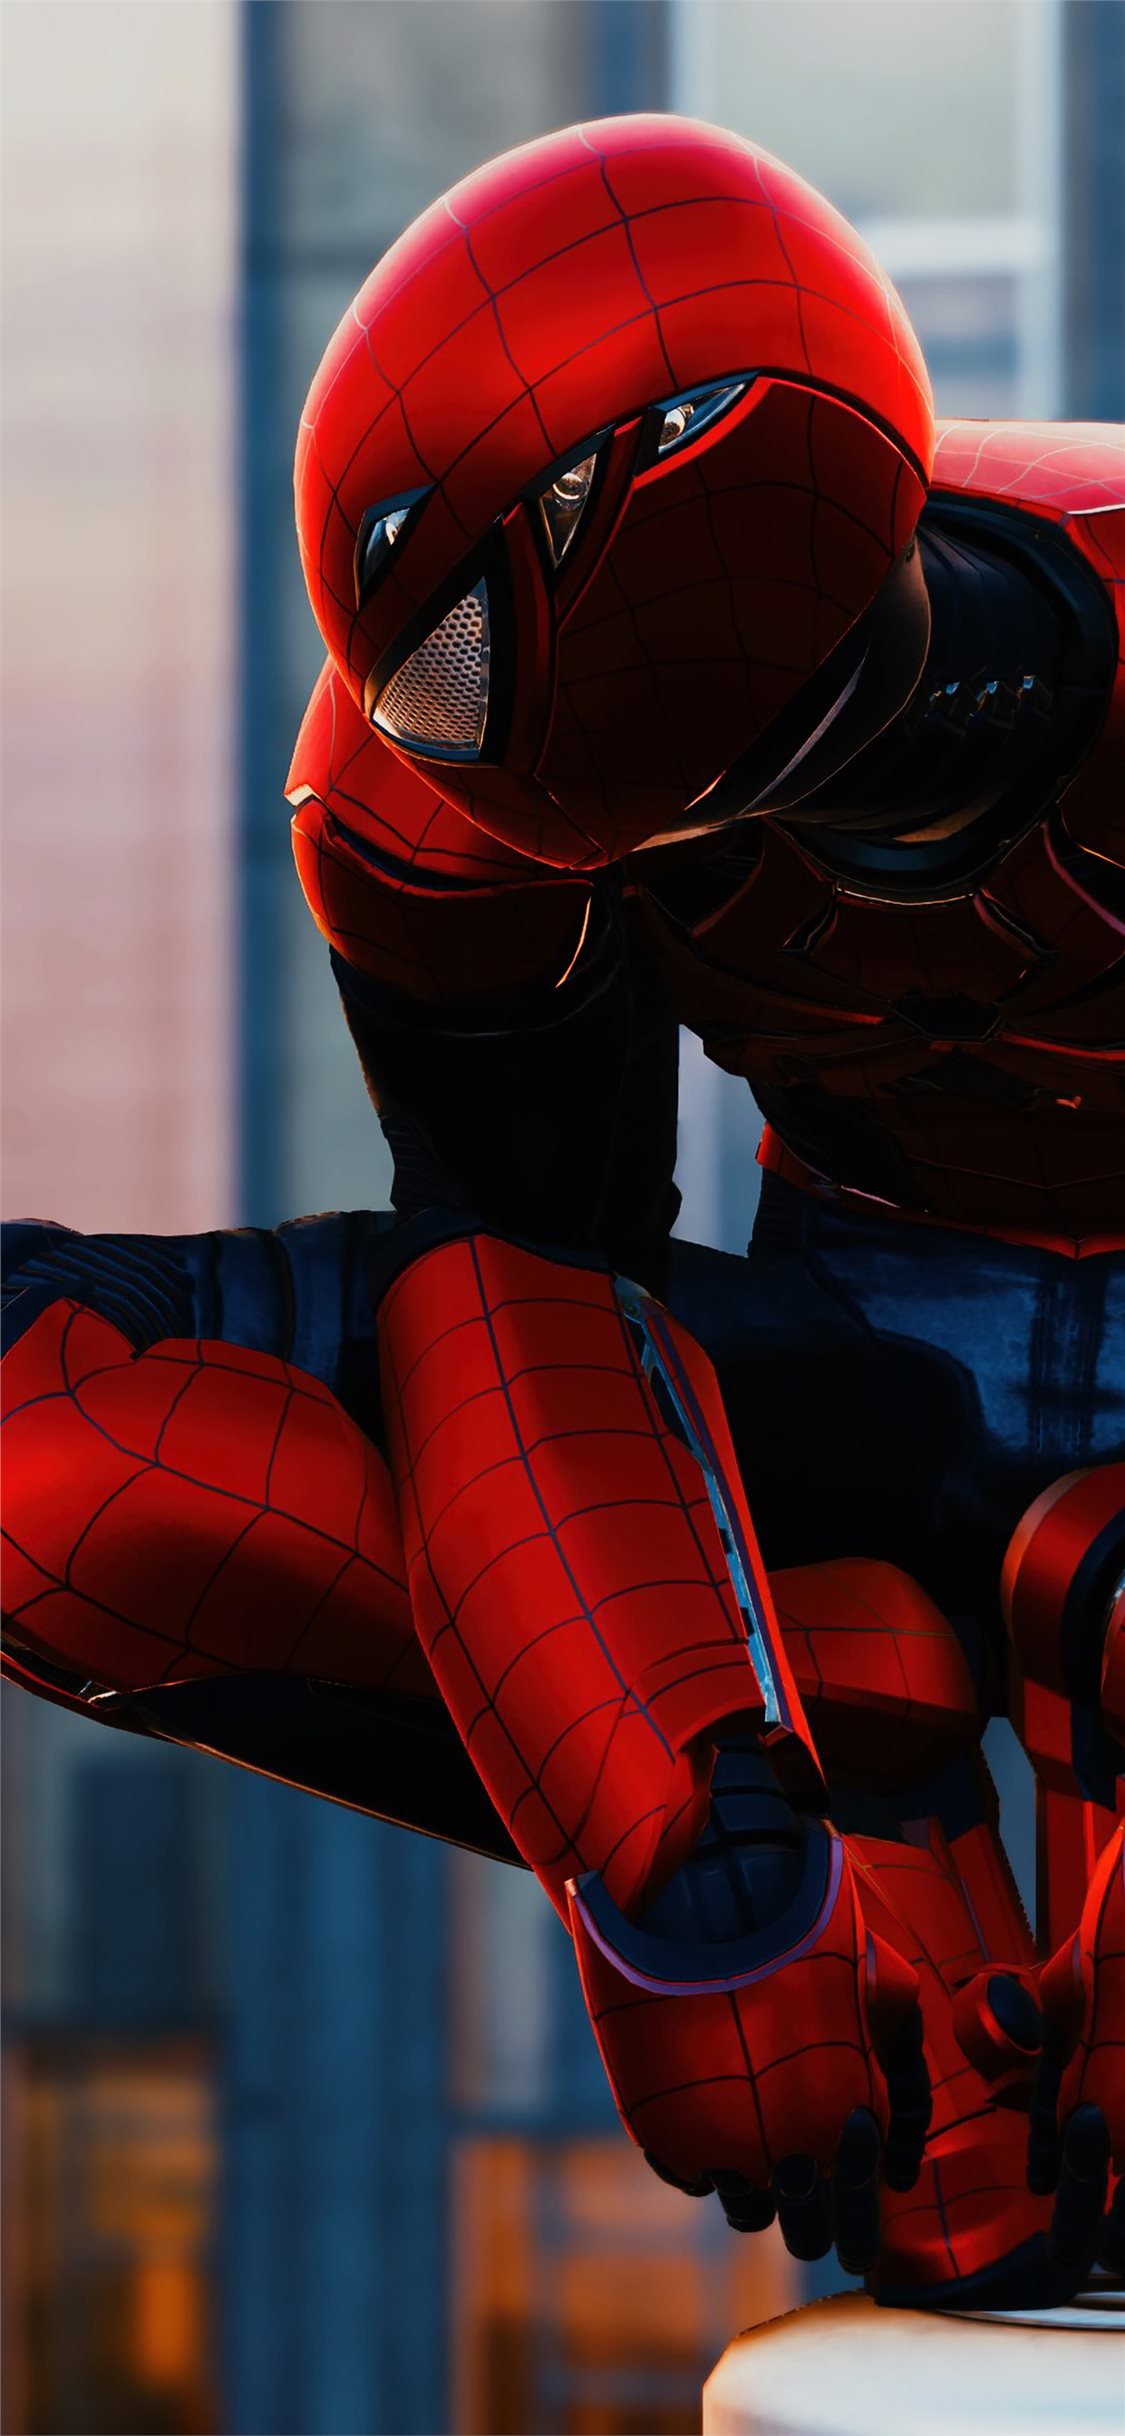 marvel spiderman ps4 game 4k iPhone 11 Wallpapers Free ...